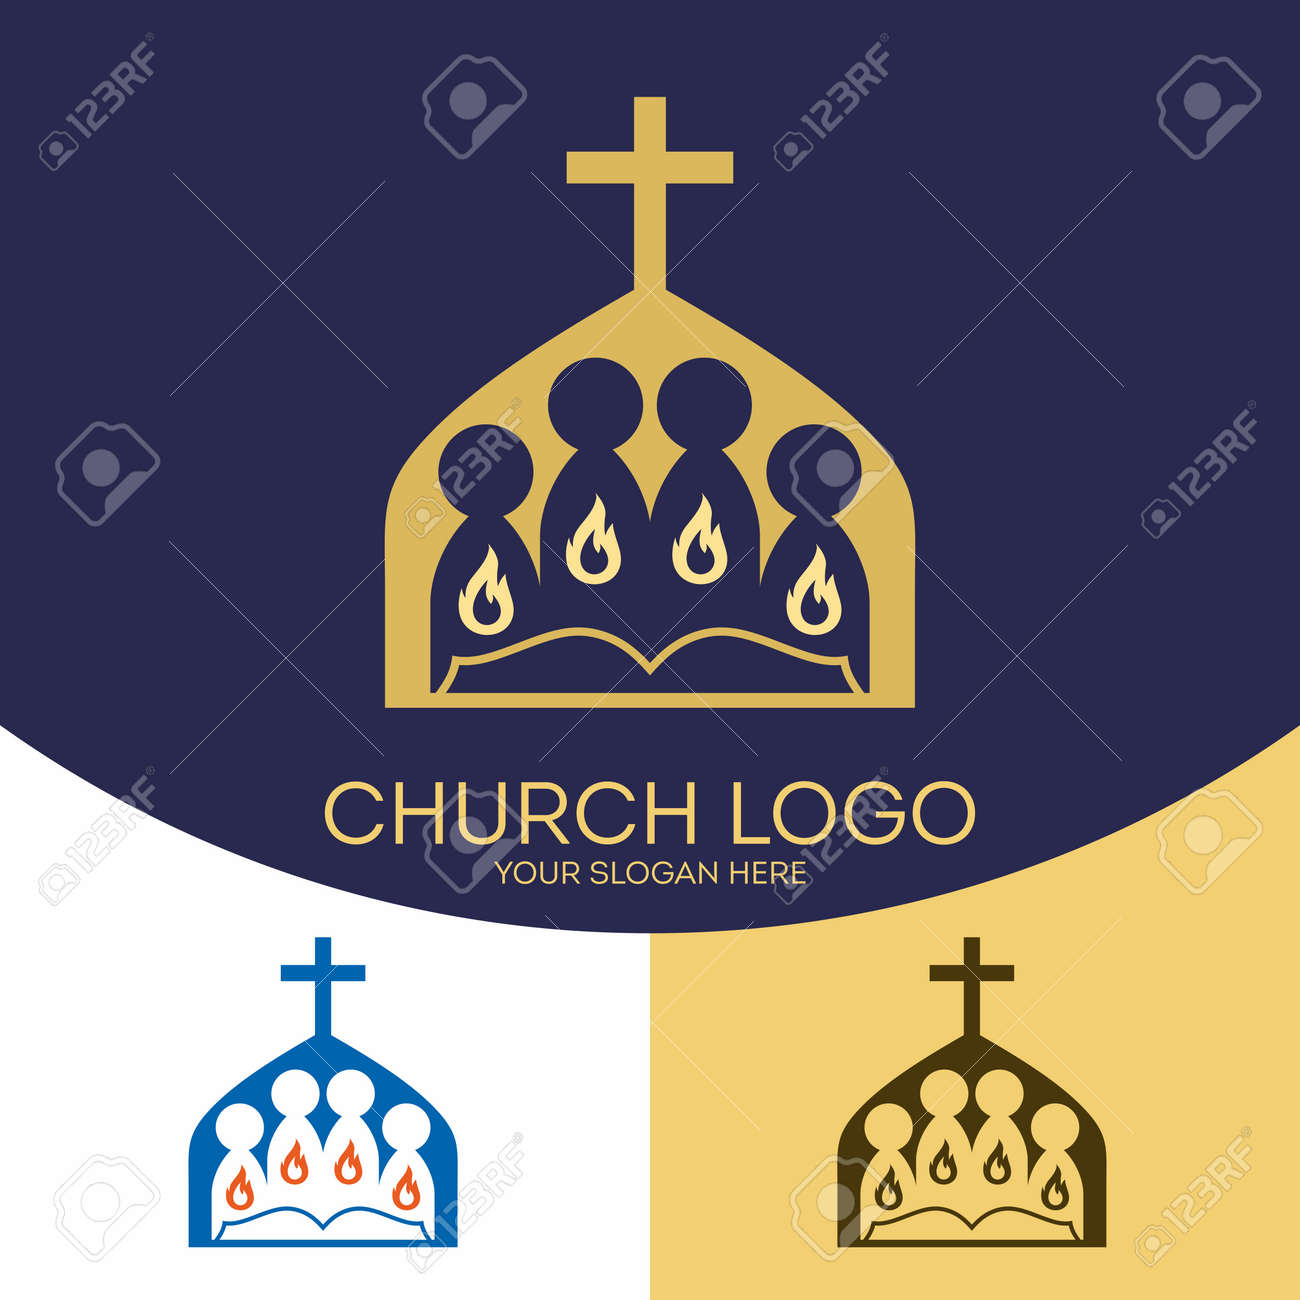 Church Logo Christian Symbols The Gathering Of The Saints In